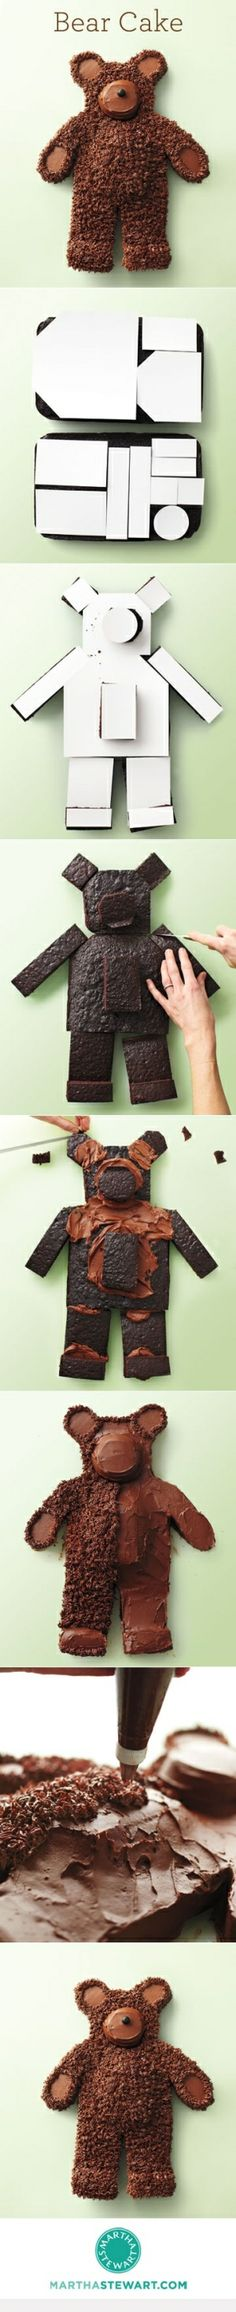 bear cake by Kim Paige